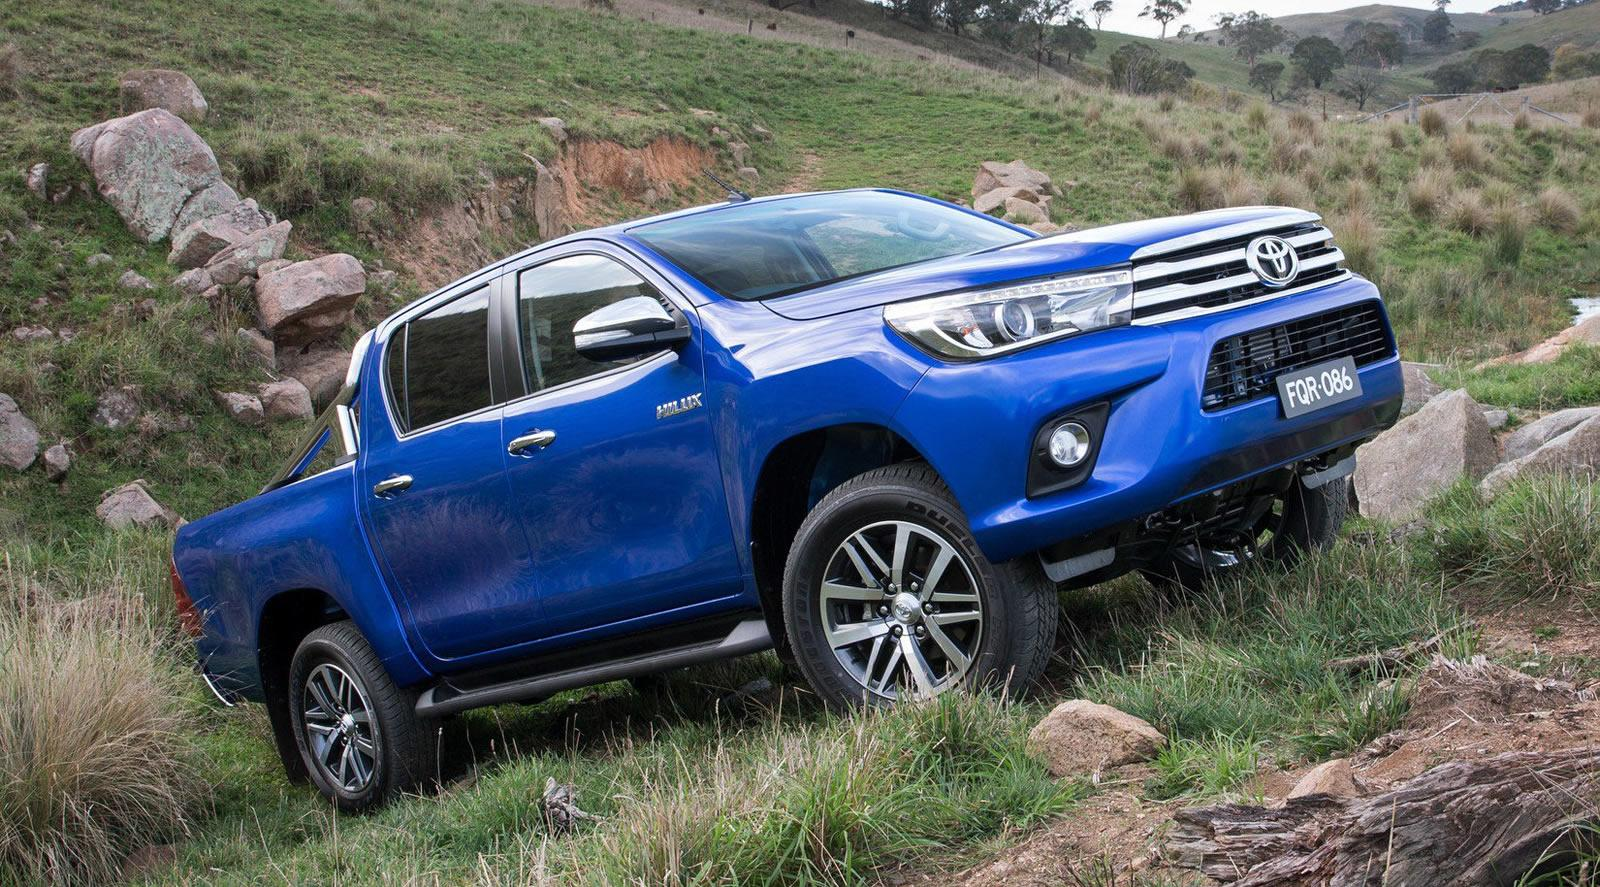 11 further Nlss N Np200 Nissan Np200 2009 Stainless Steel Low Nudge 2 moreover 2016 Toyota Hilux Trd Sportivo Brochure 021 in addition 9 further Landcruiser. on toyota hilux 2016